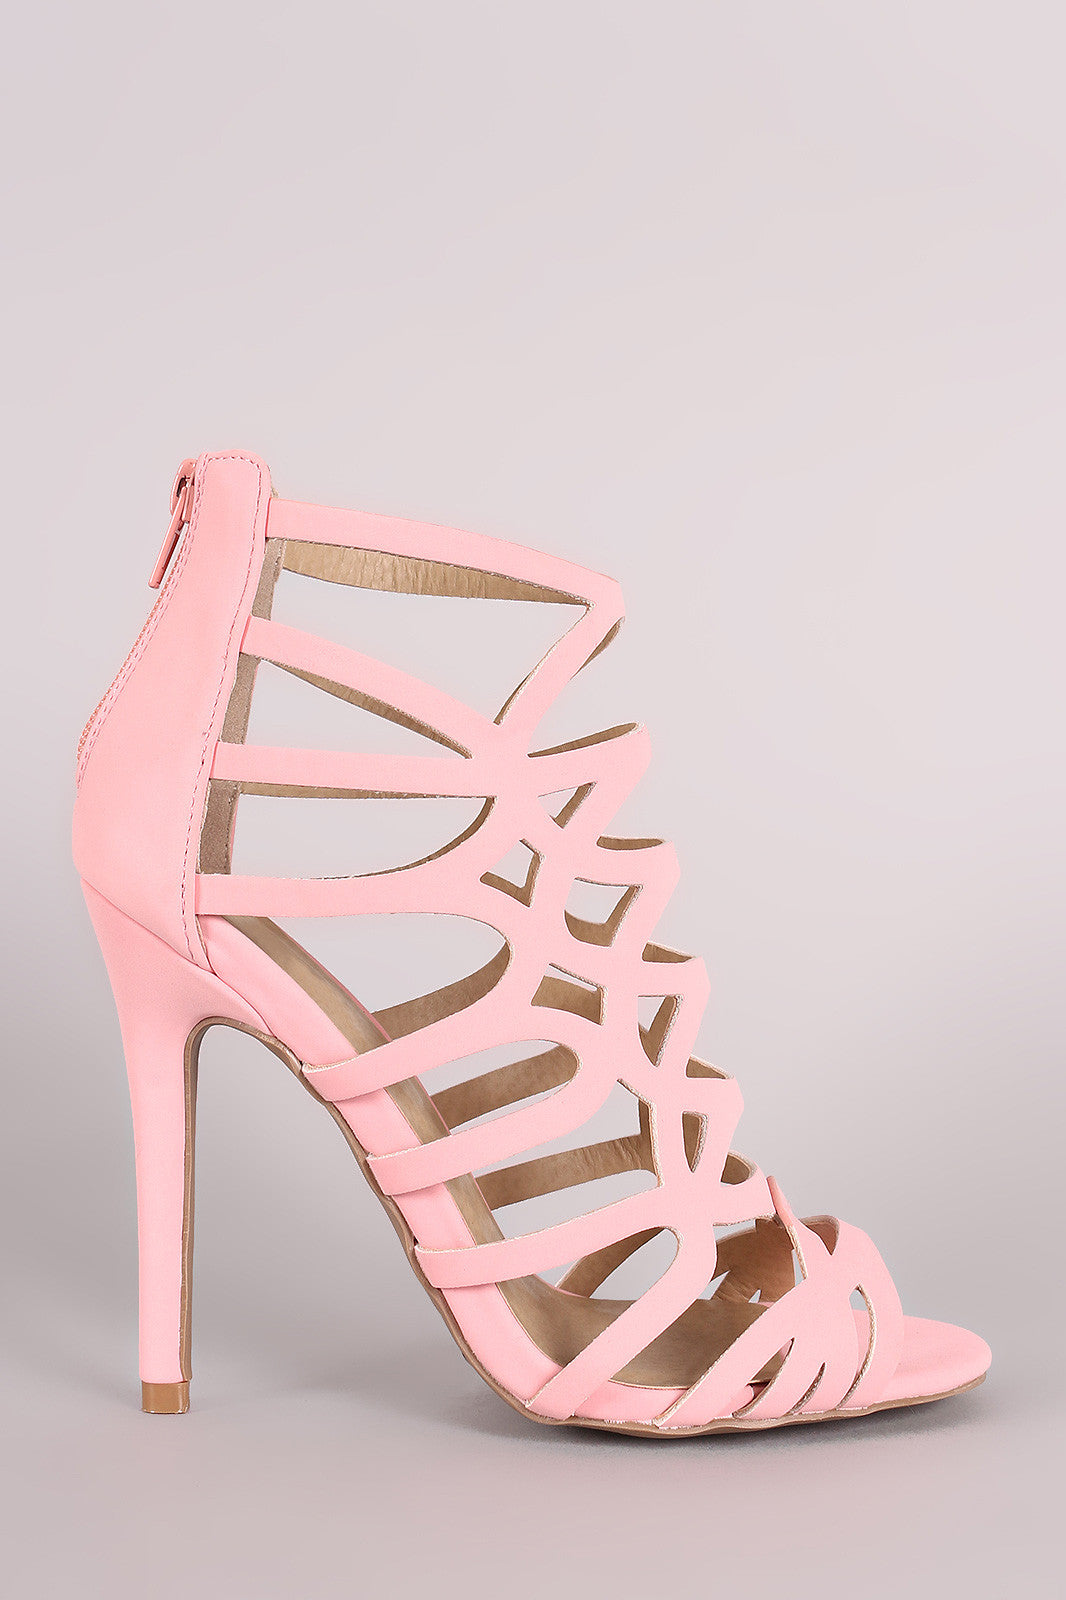 Qupid Nubuck Strappy Caged Stiletto Heel - Thick 'N' Curvy Shop - 9